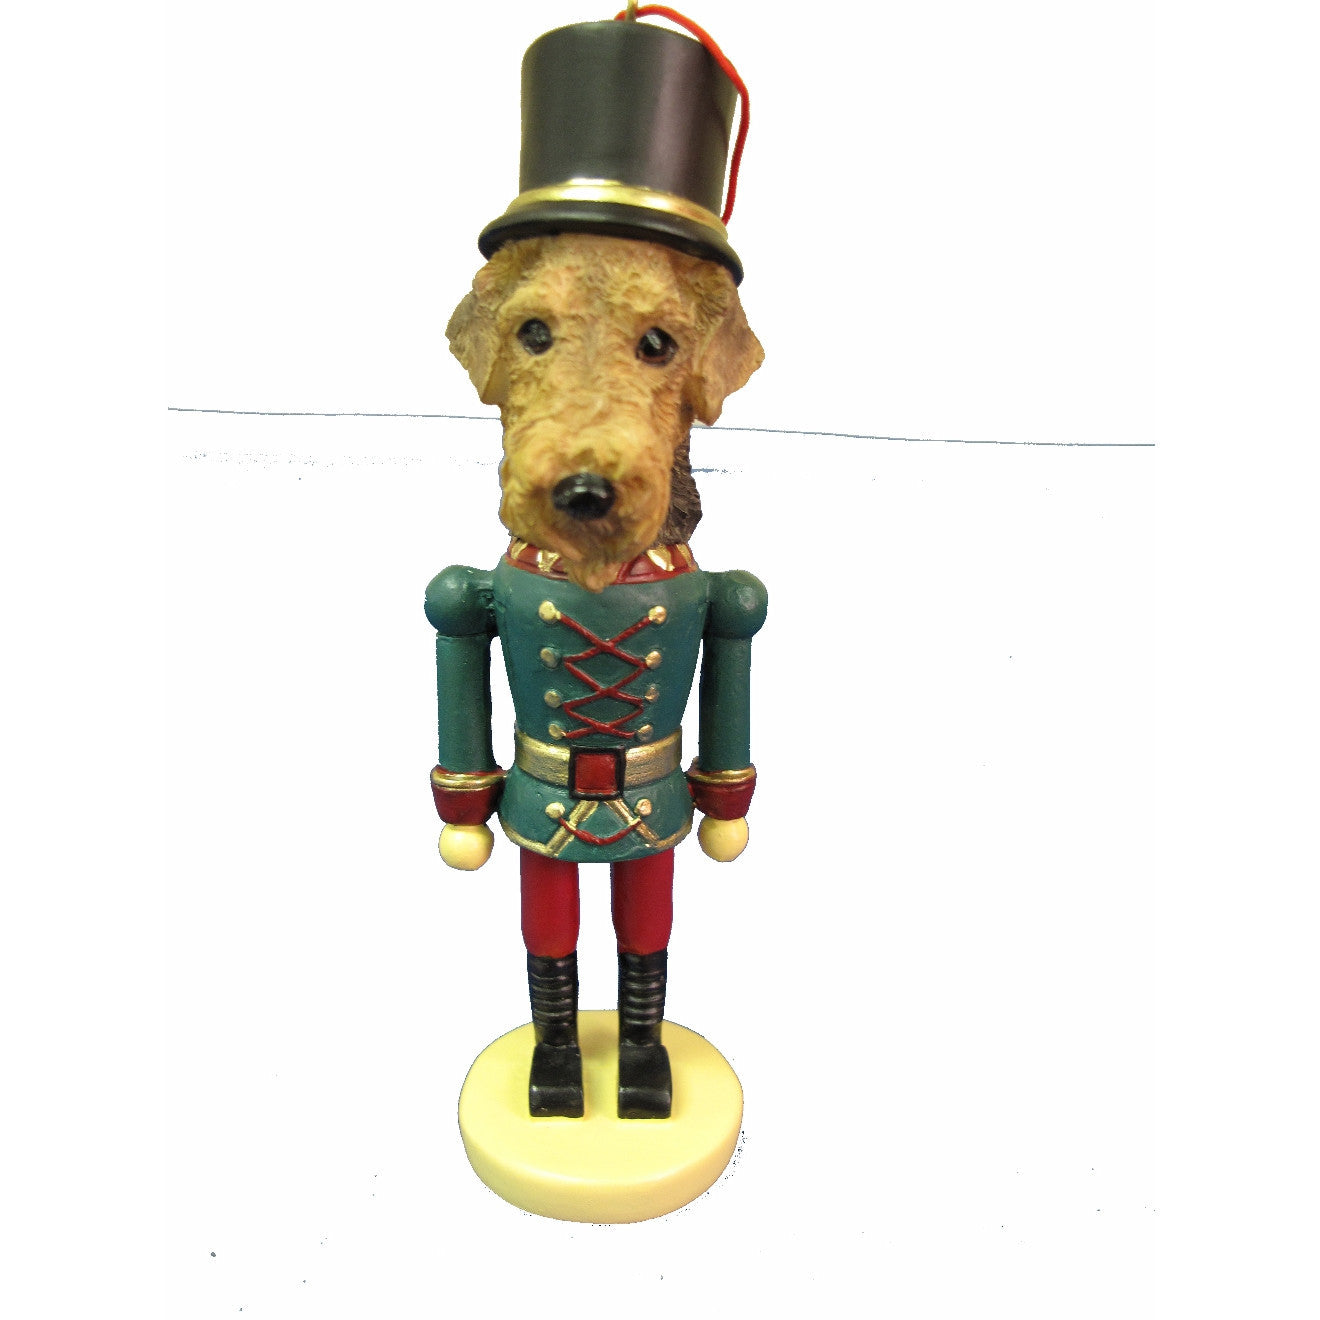 Airedale Terrier Dog Toy Soldier Nutcracker Christmas Ornament ...